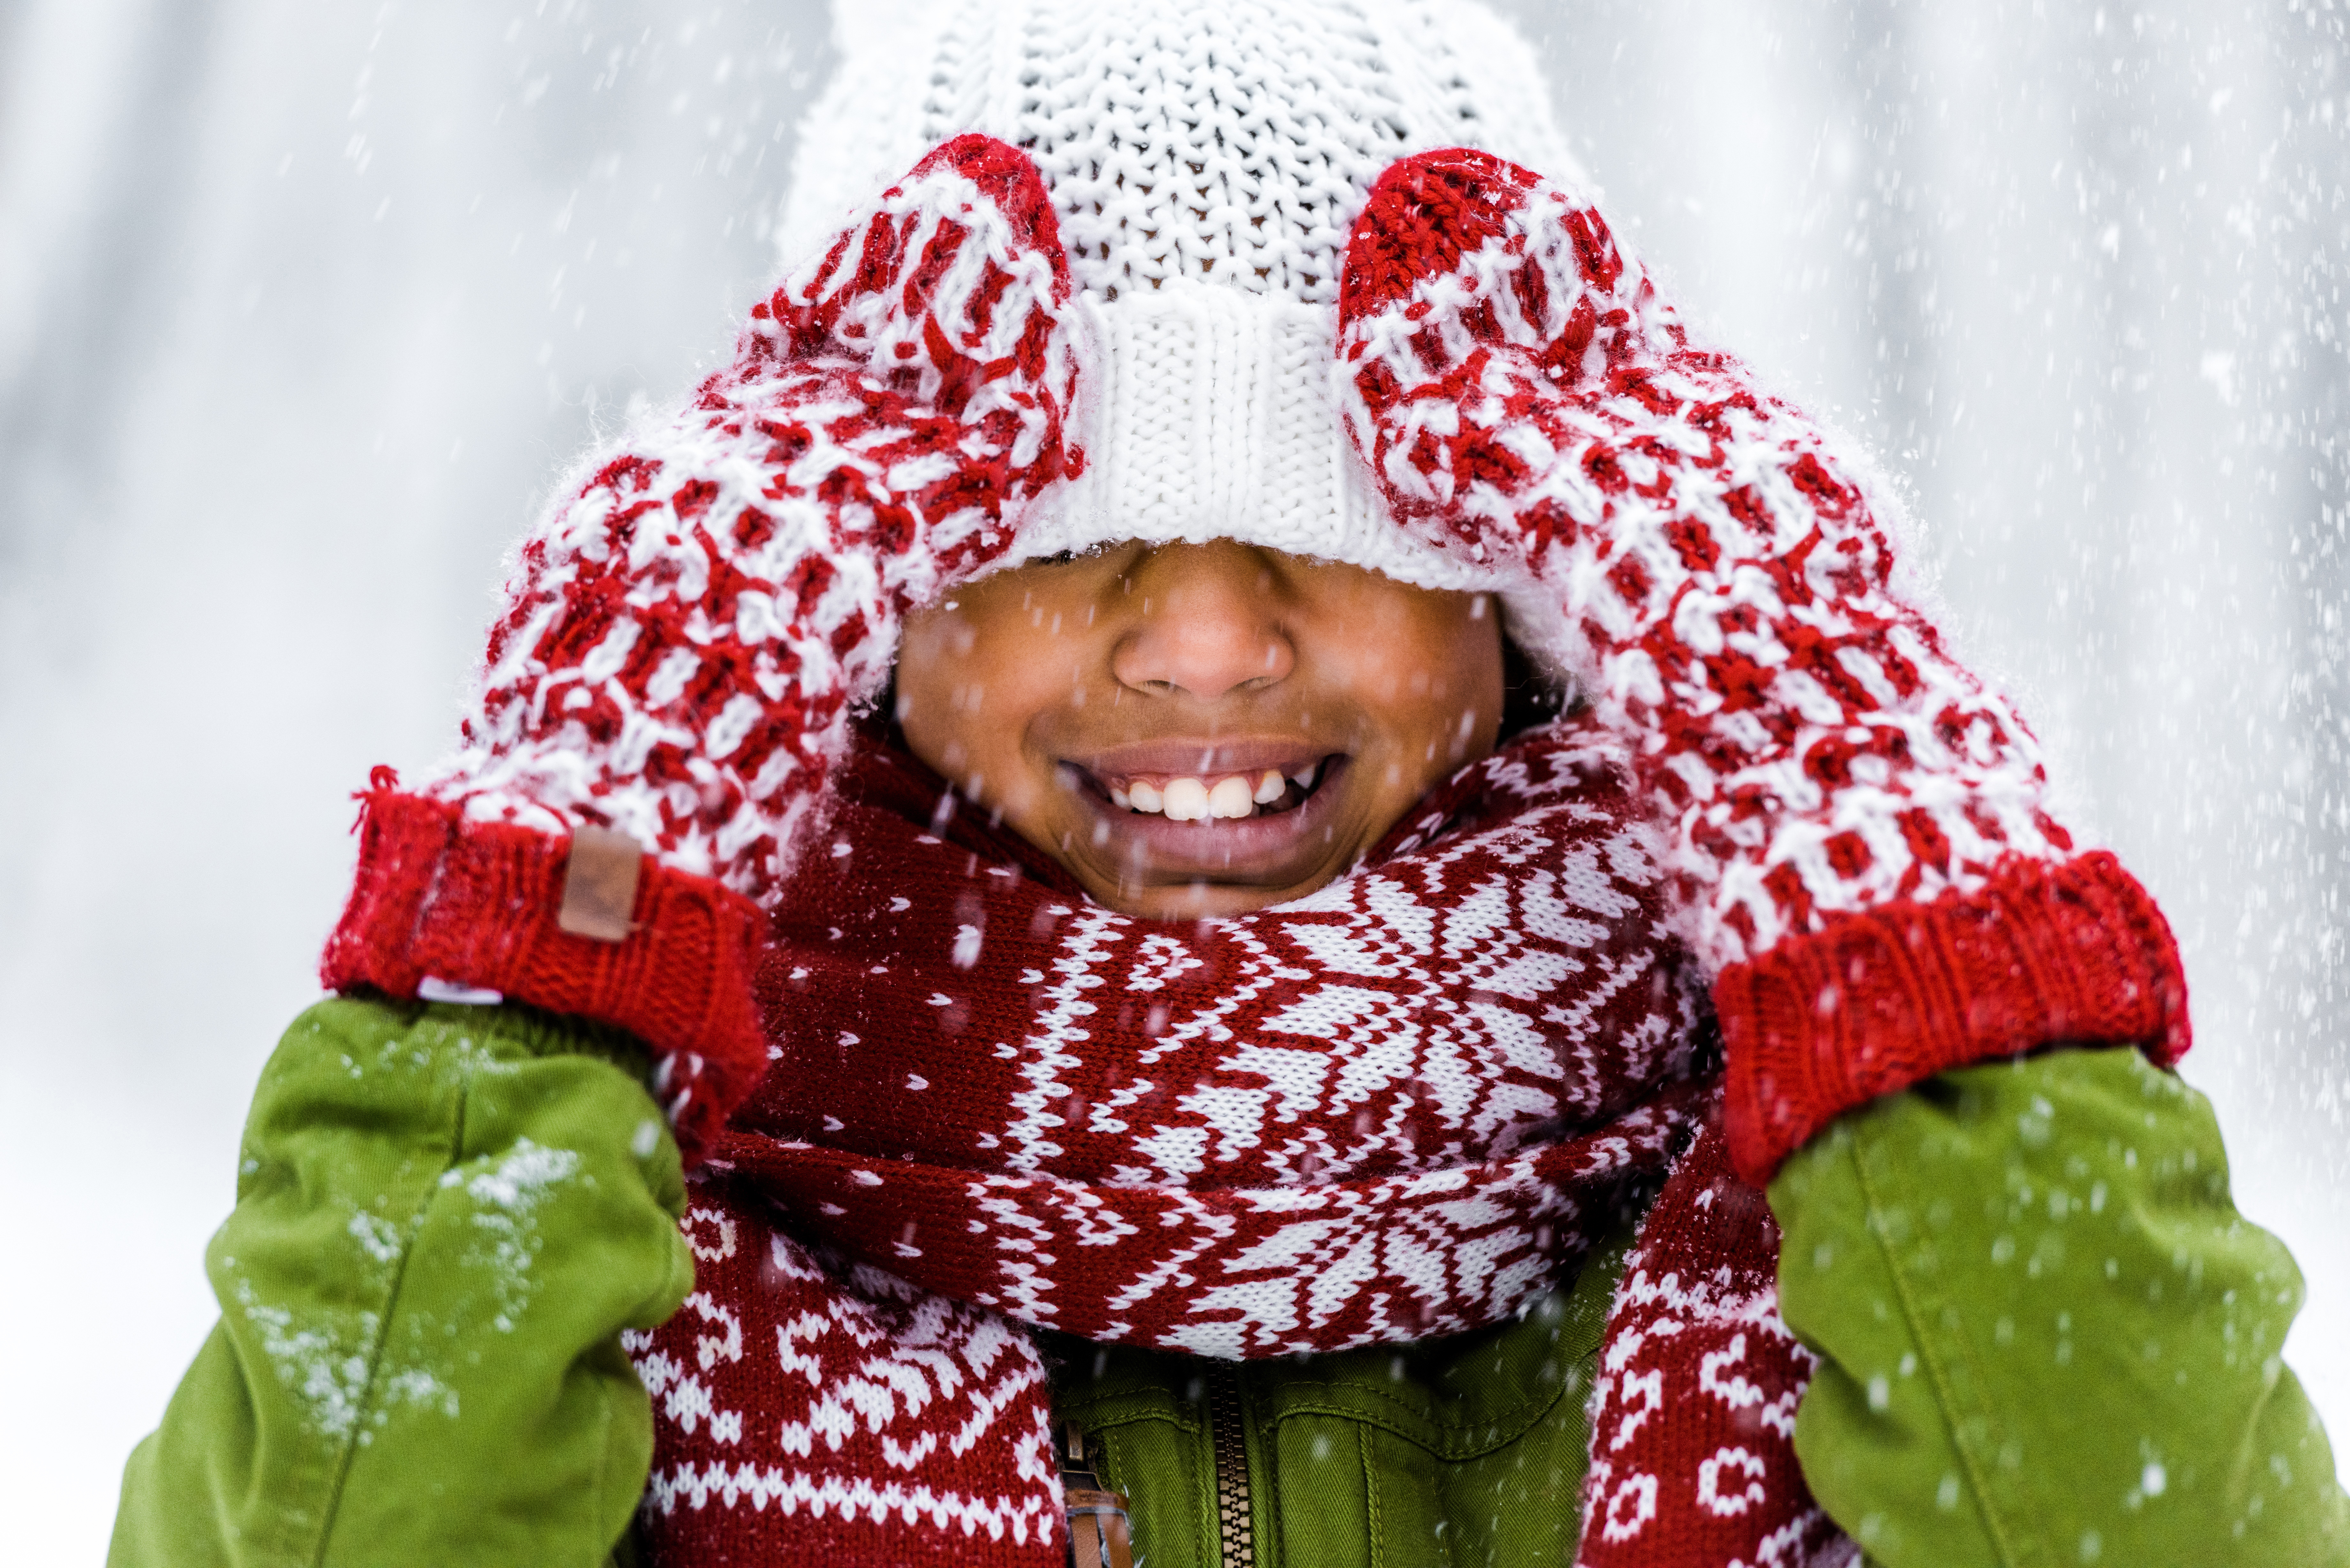 Cute African American child with knitted hat pulled over eyes smiling during snowfall